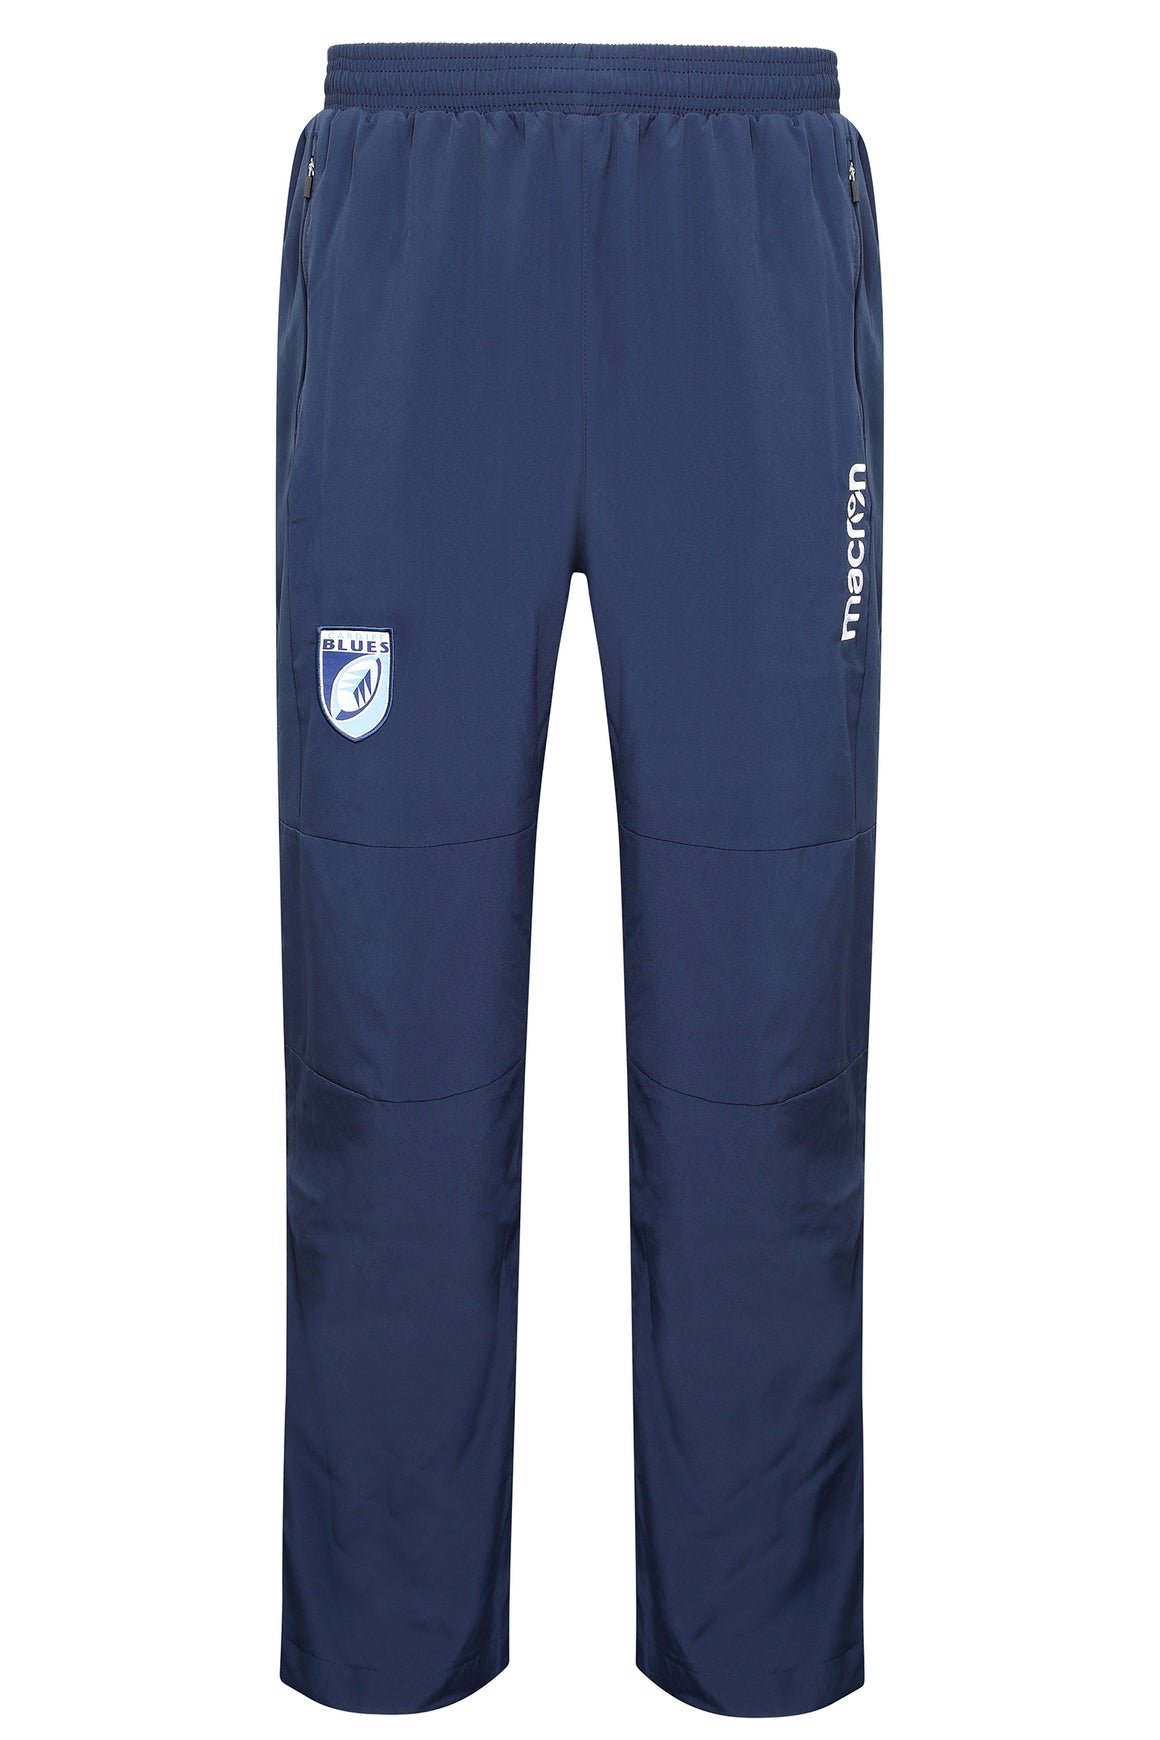 Cardiff Blues Travel Bottoms Adult 18/19